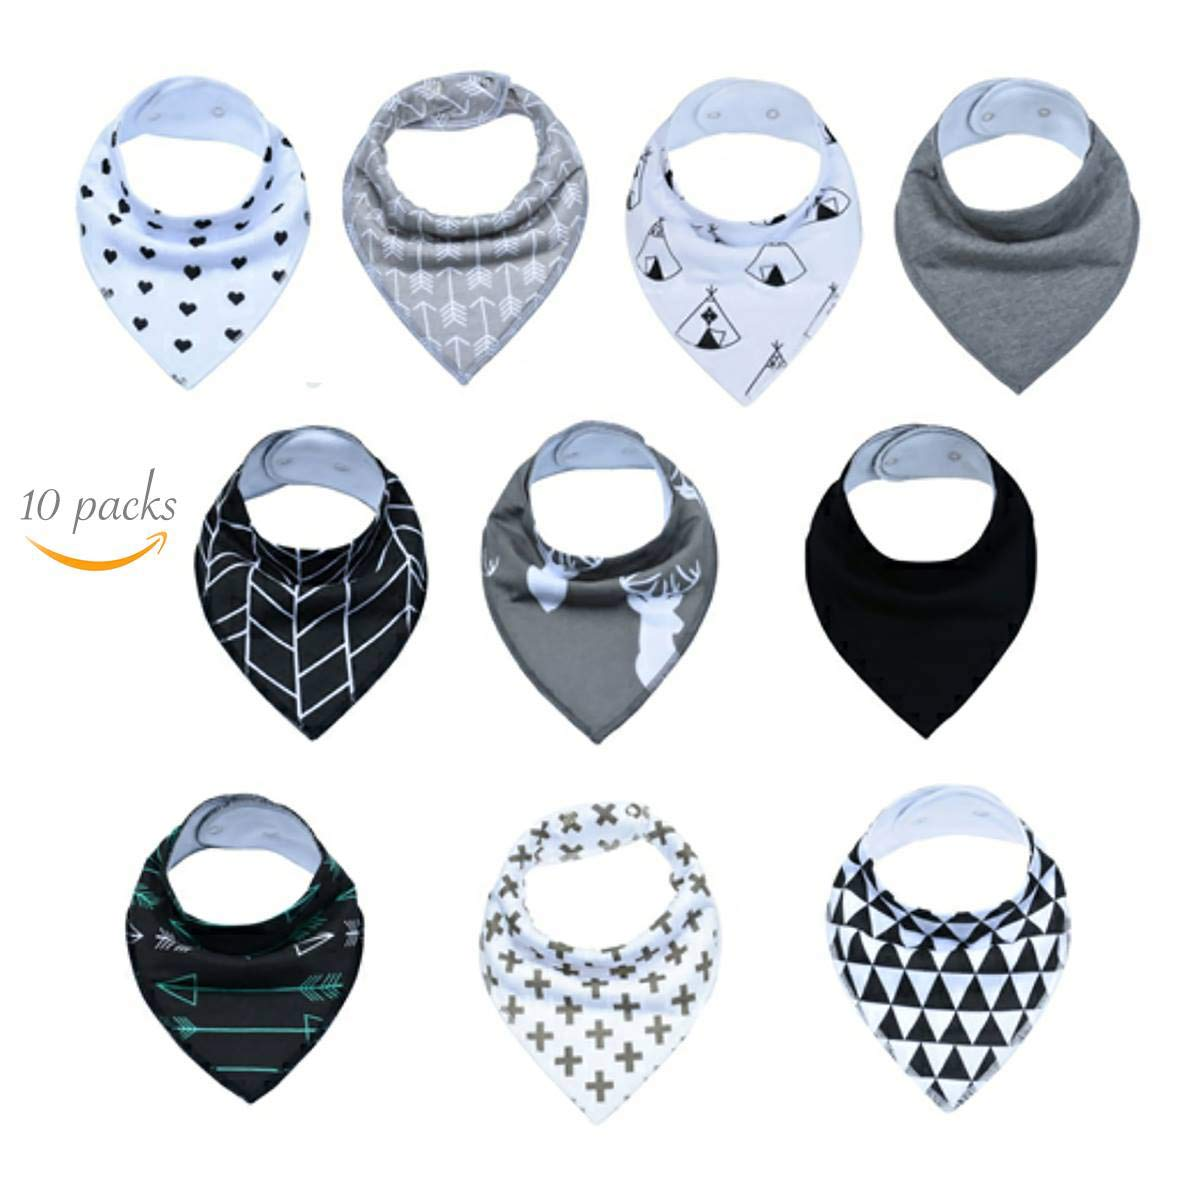 10 Packs Baby Bandana Drooling and Teething Bibs Premium 2 Layered Baby Bibs by Linckenzie Monochrome Series Yiwu Lydoo Industry Company